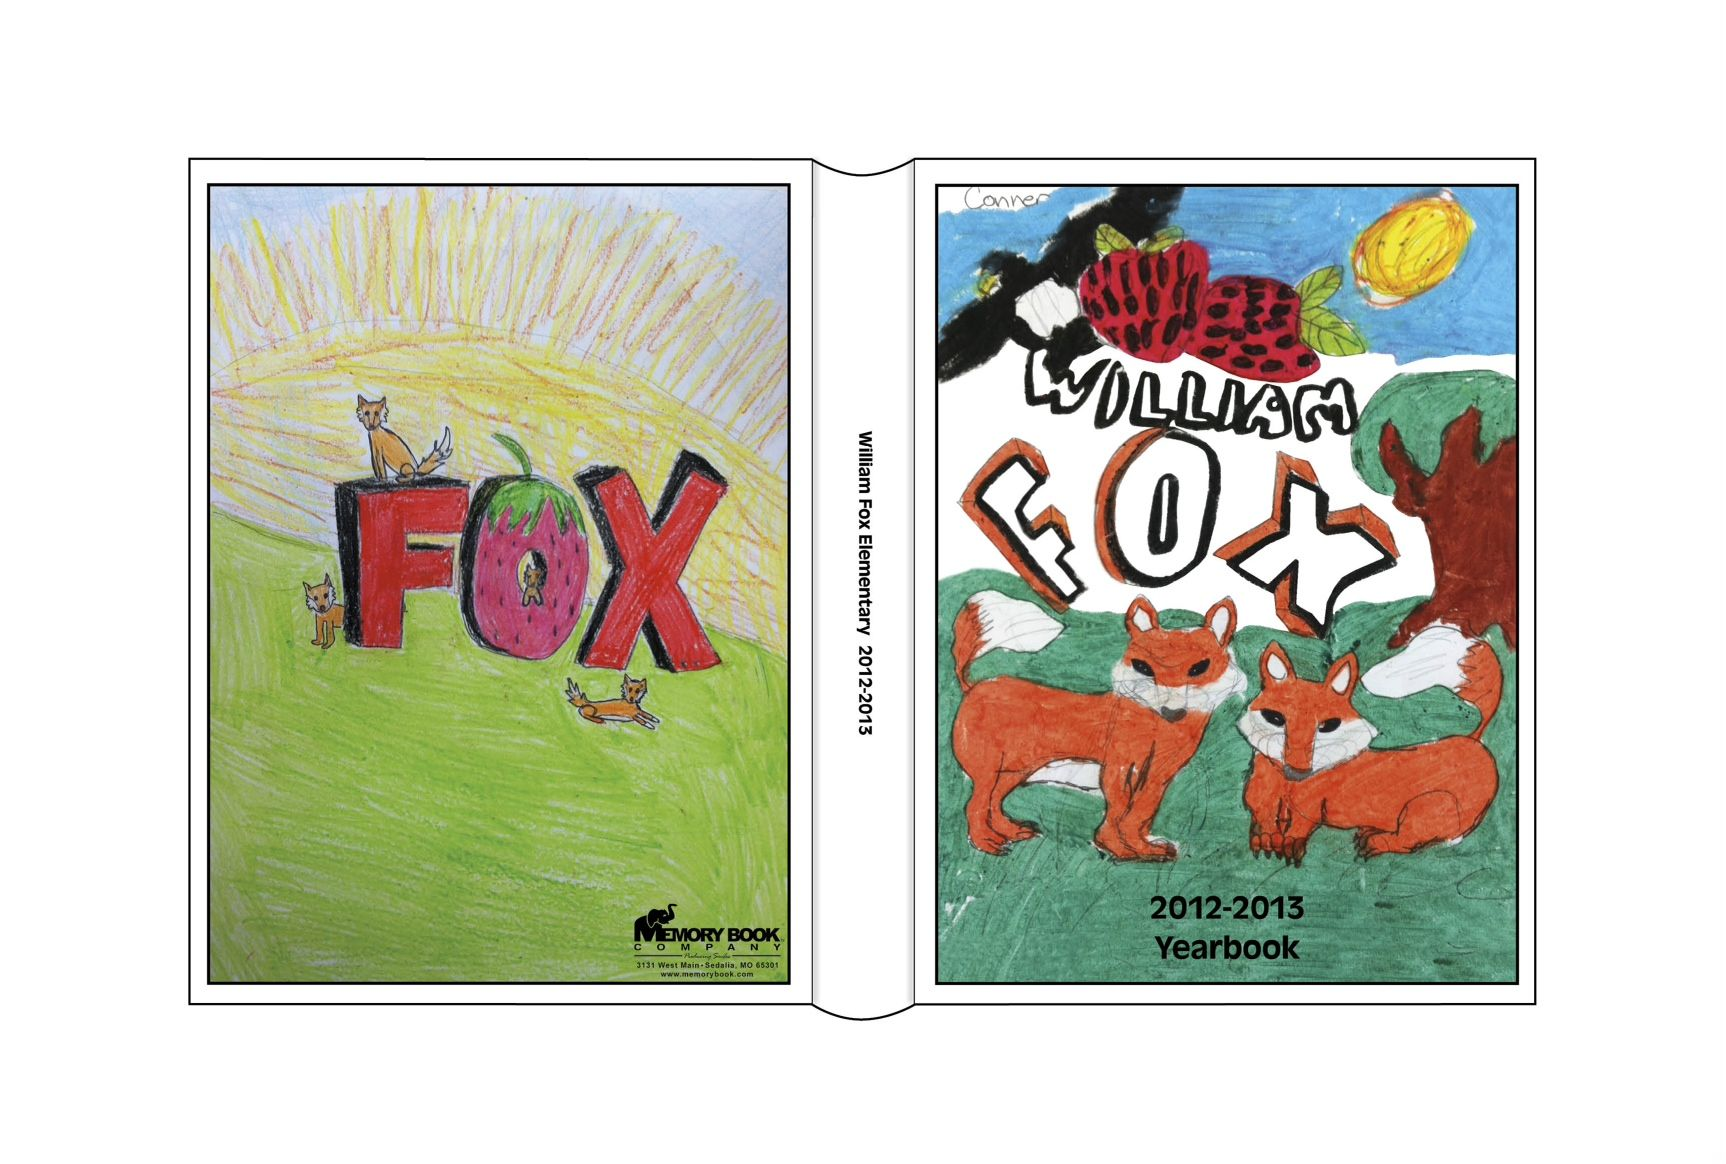 Riveting Yearbook Cover Ideas Elementary School Front Cover Marjorie Yearbook Cover Contest Ideas Yearbook Cover Title Ideas Marjorie Yearbook Cover Ideas Elementary School Front Cover ideas Yearbook Cover Ideas